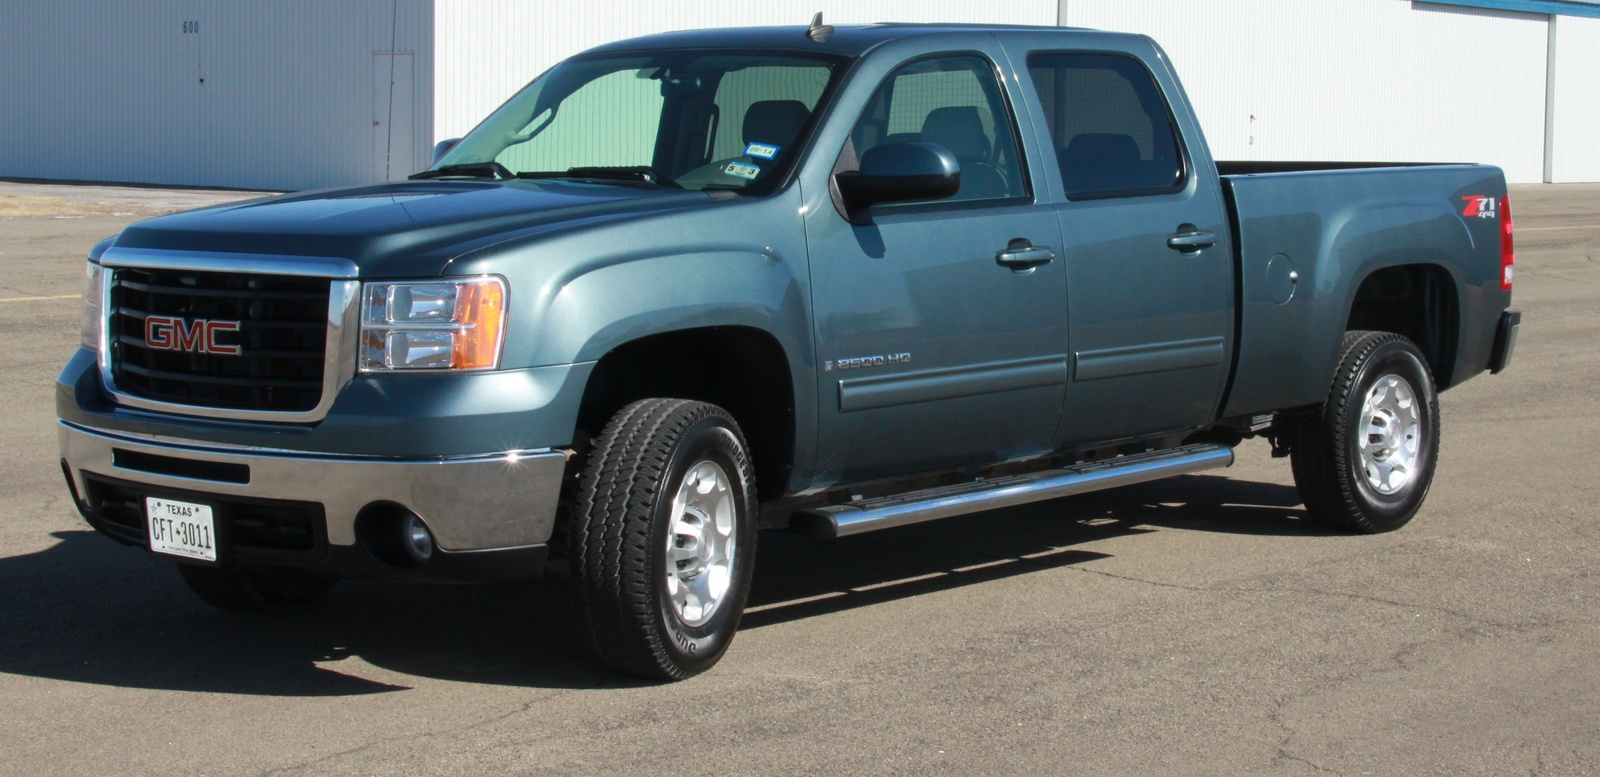 2008 GMC Sierra 2500hd #2